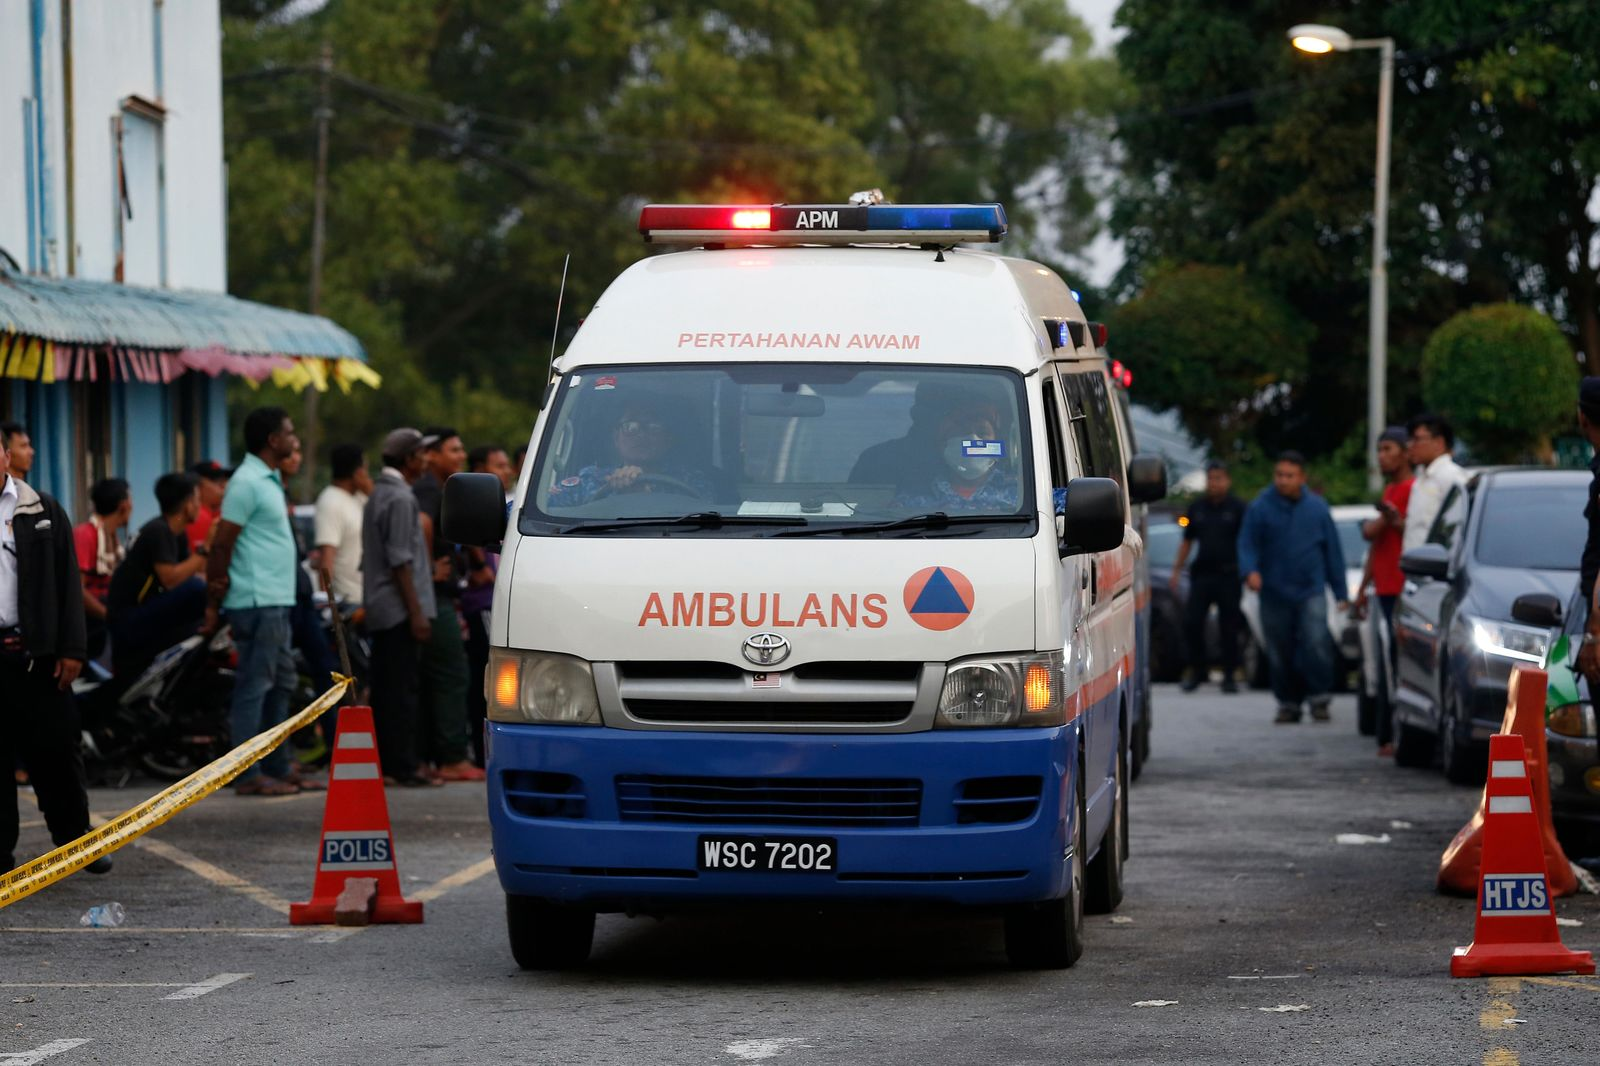 An ambulance transporting the body of a Caucasian female, arrives at a hospital morgue in Seremban, Negeri Sembilan, Malaysia, Tuesday, Aug. 13, 2019.{ } (AP Photo/Lai Seng Sin)